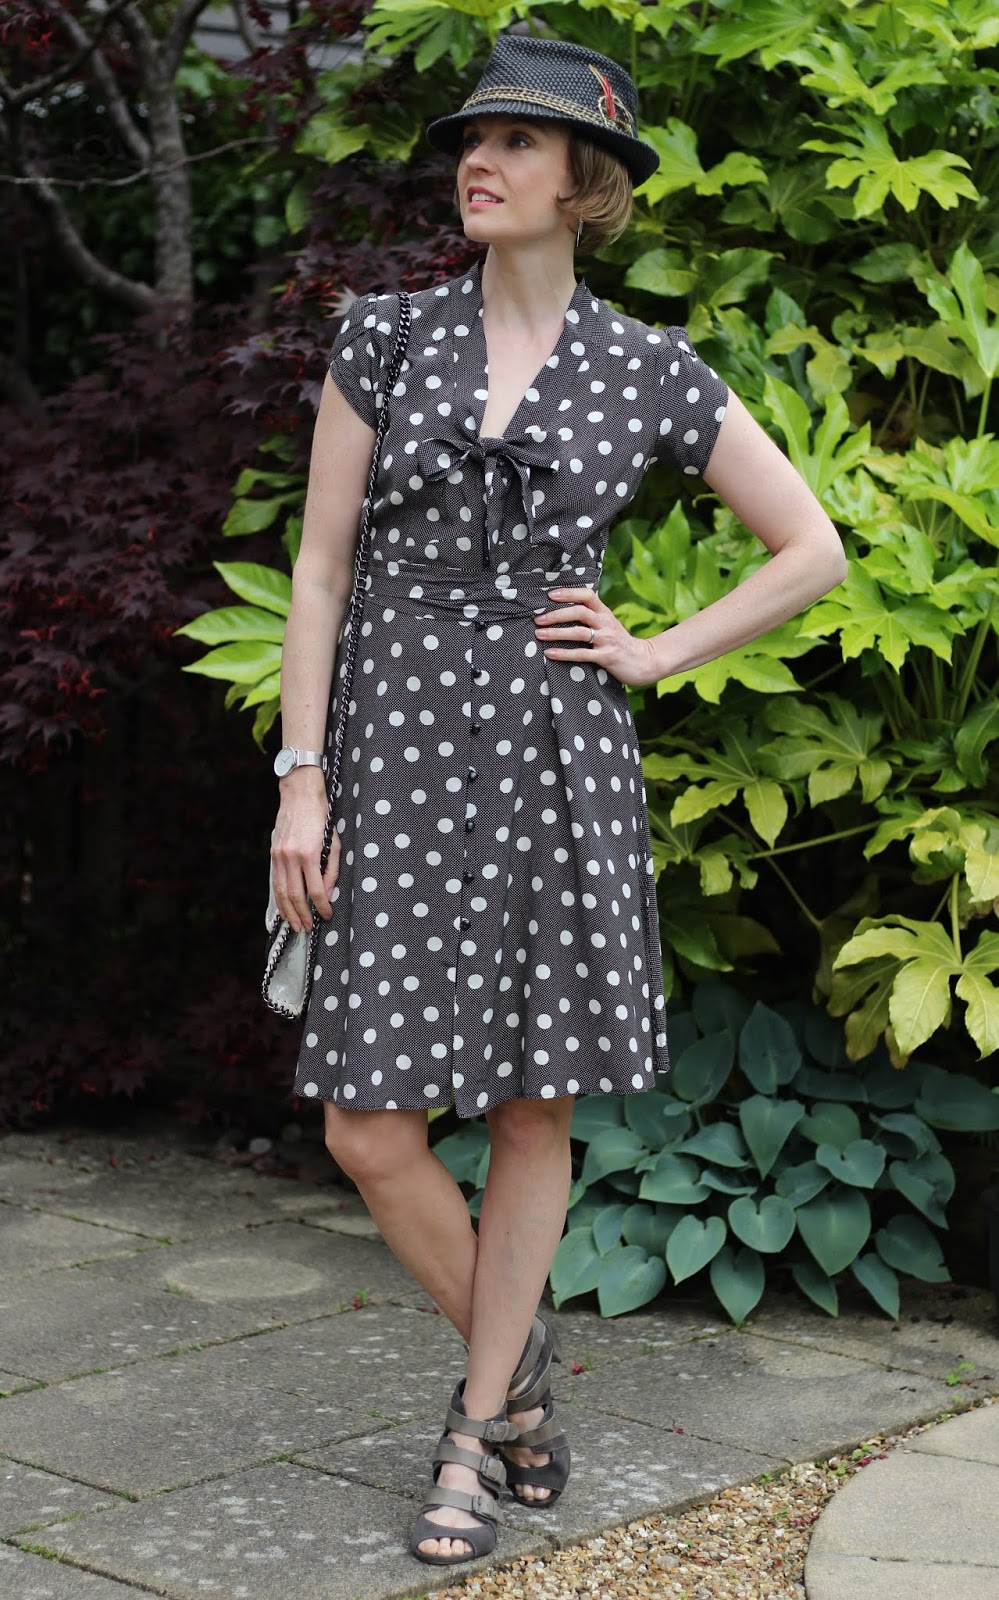 Trilby Hat | Vintage Summer Polka Dots | Summer Outfit | Fake Fabulous